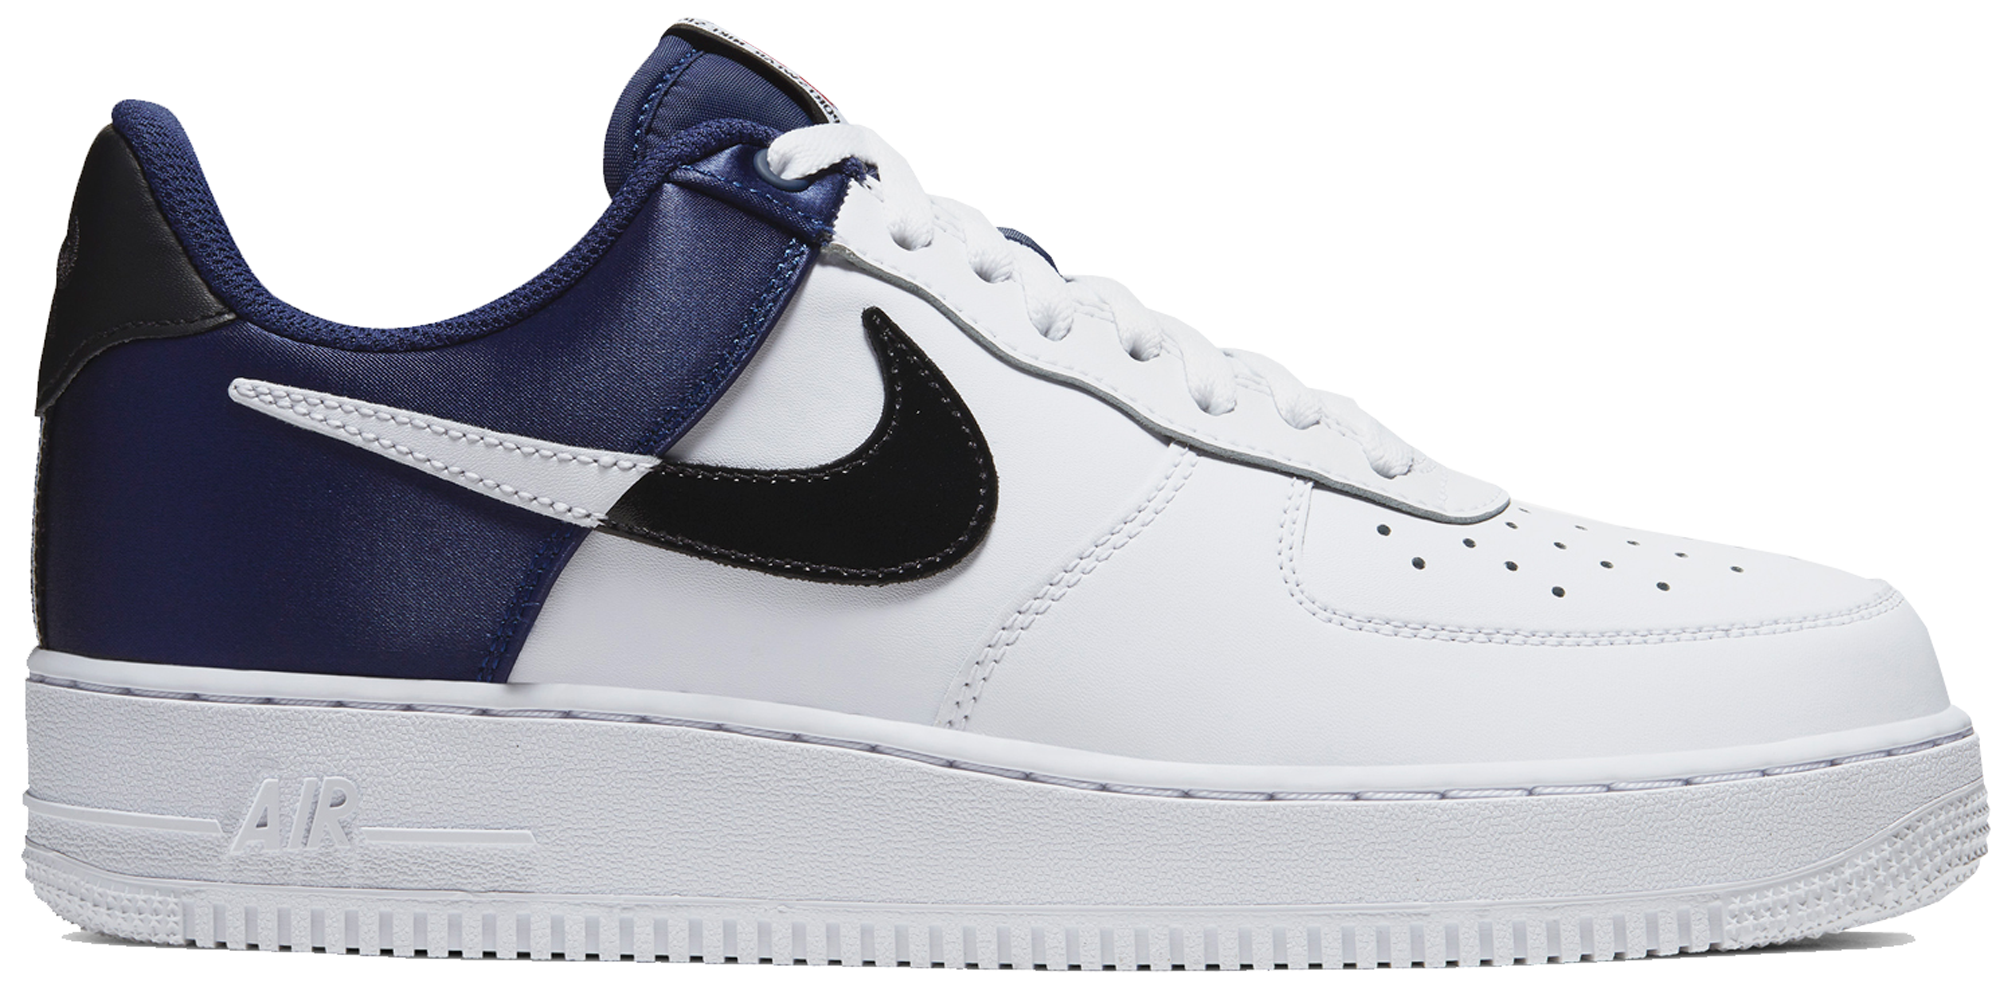 Nike Air Force 1 Low NBA City Edition